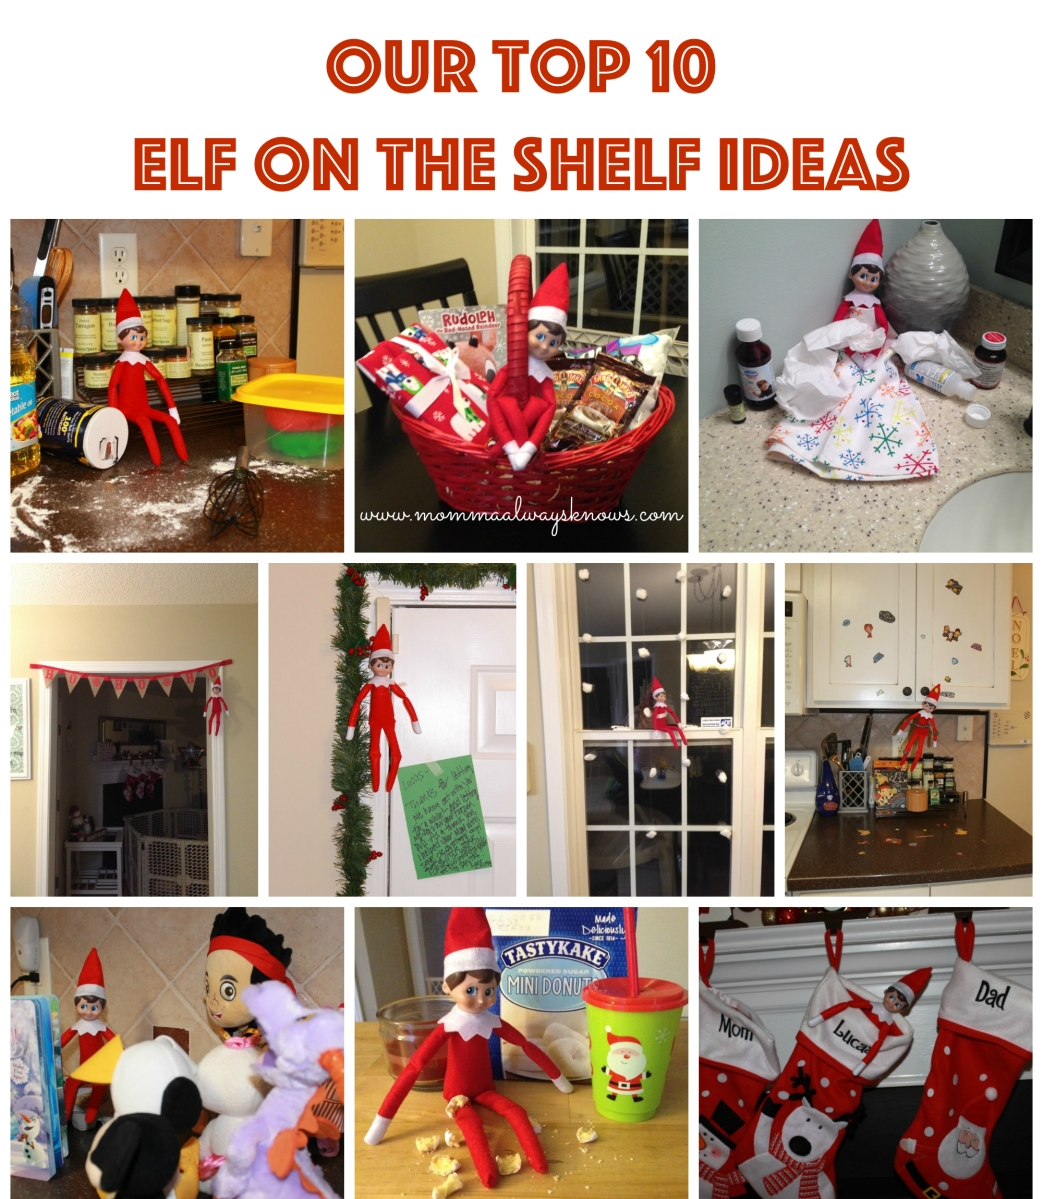 Our Top 10 Elf On The Shelf Ideas